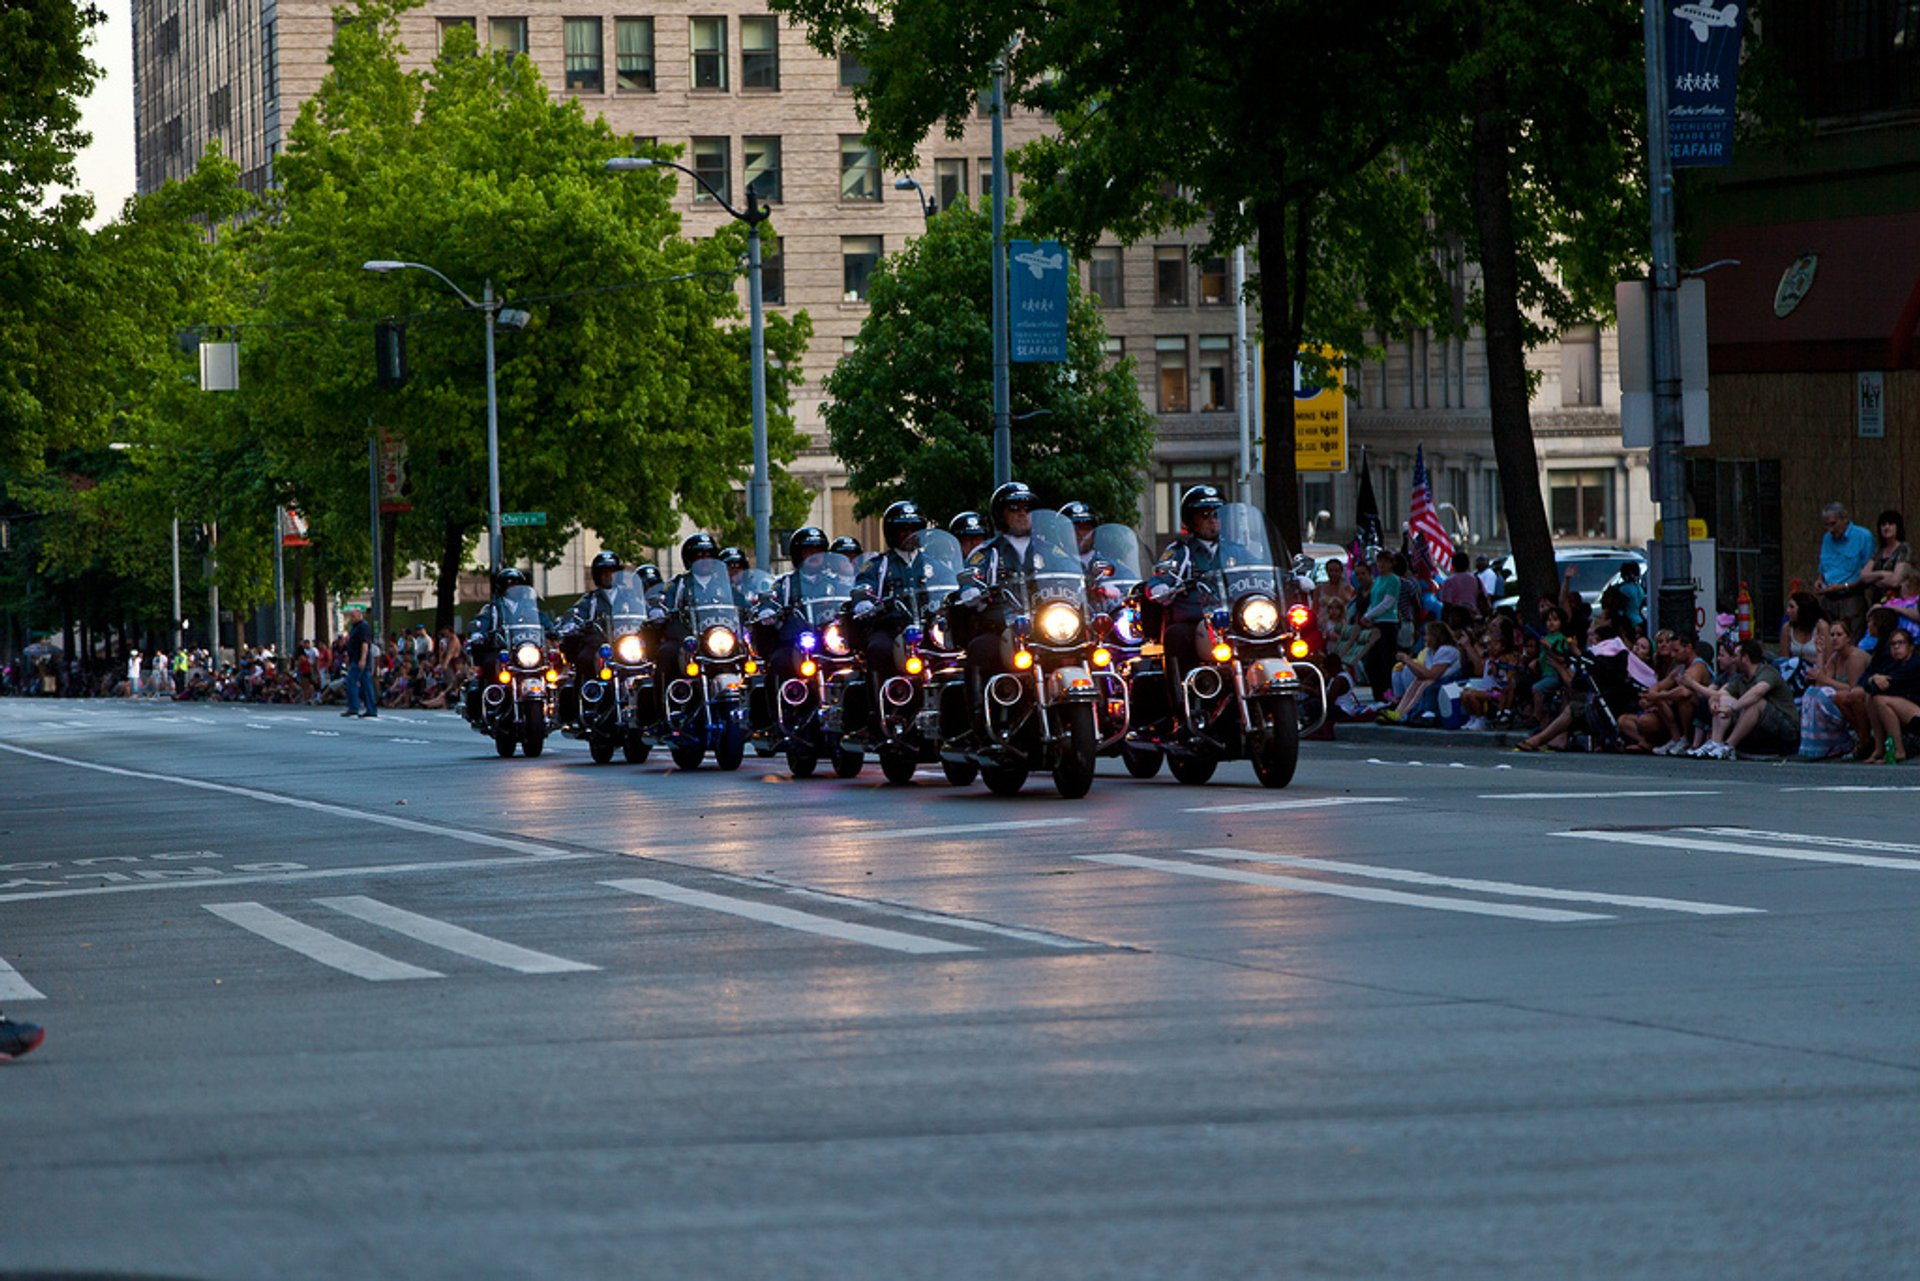 Seafair Torchlight Parade 2019 in Seattle - Dates & Map